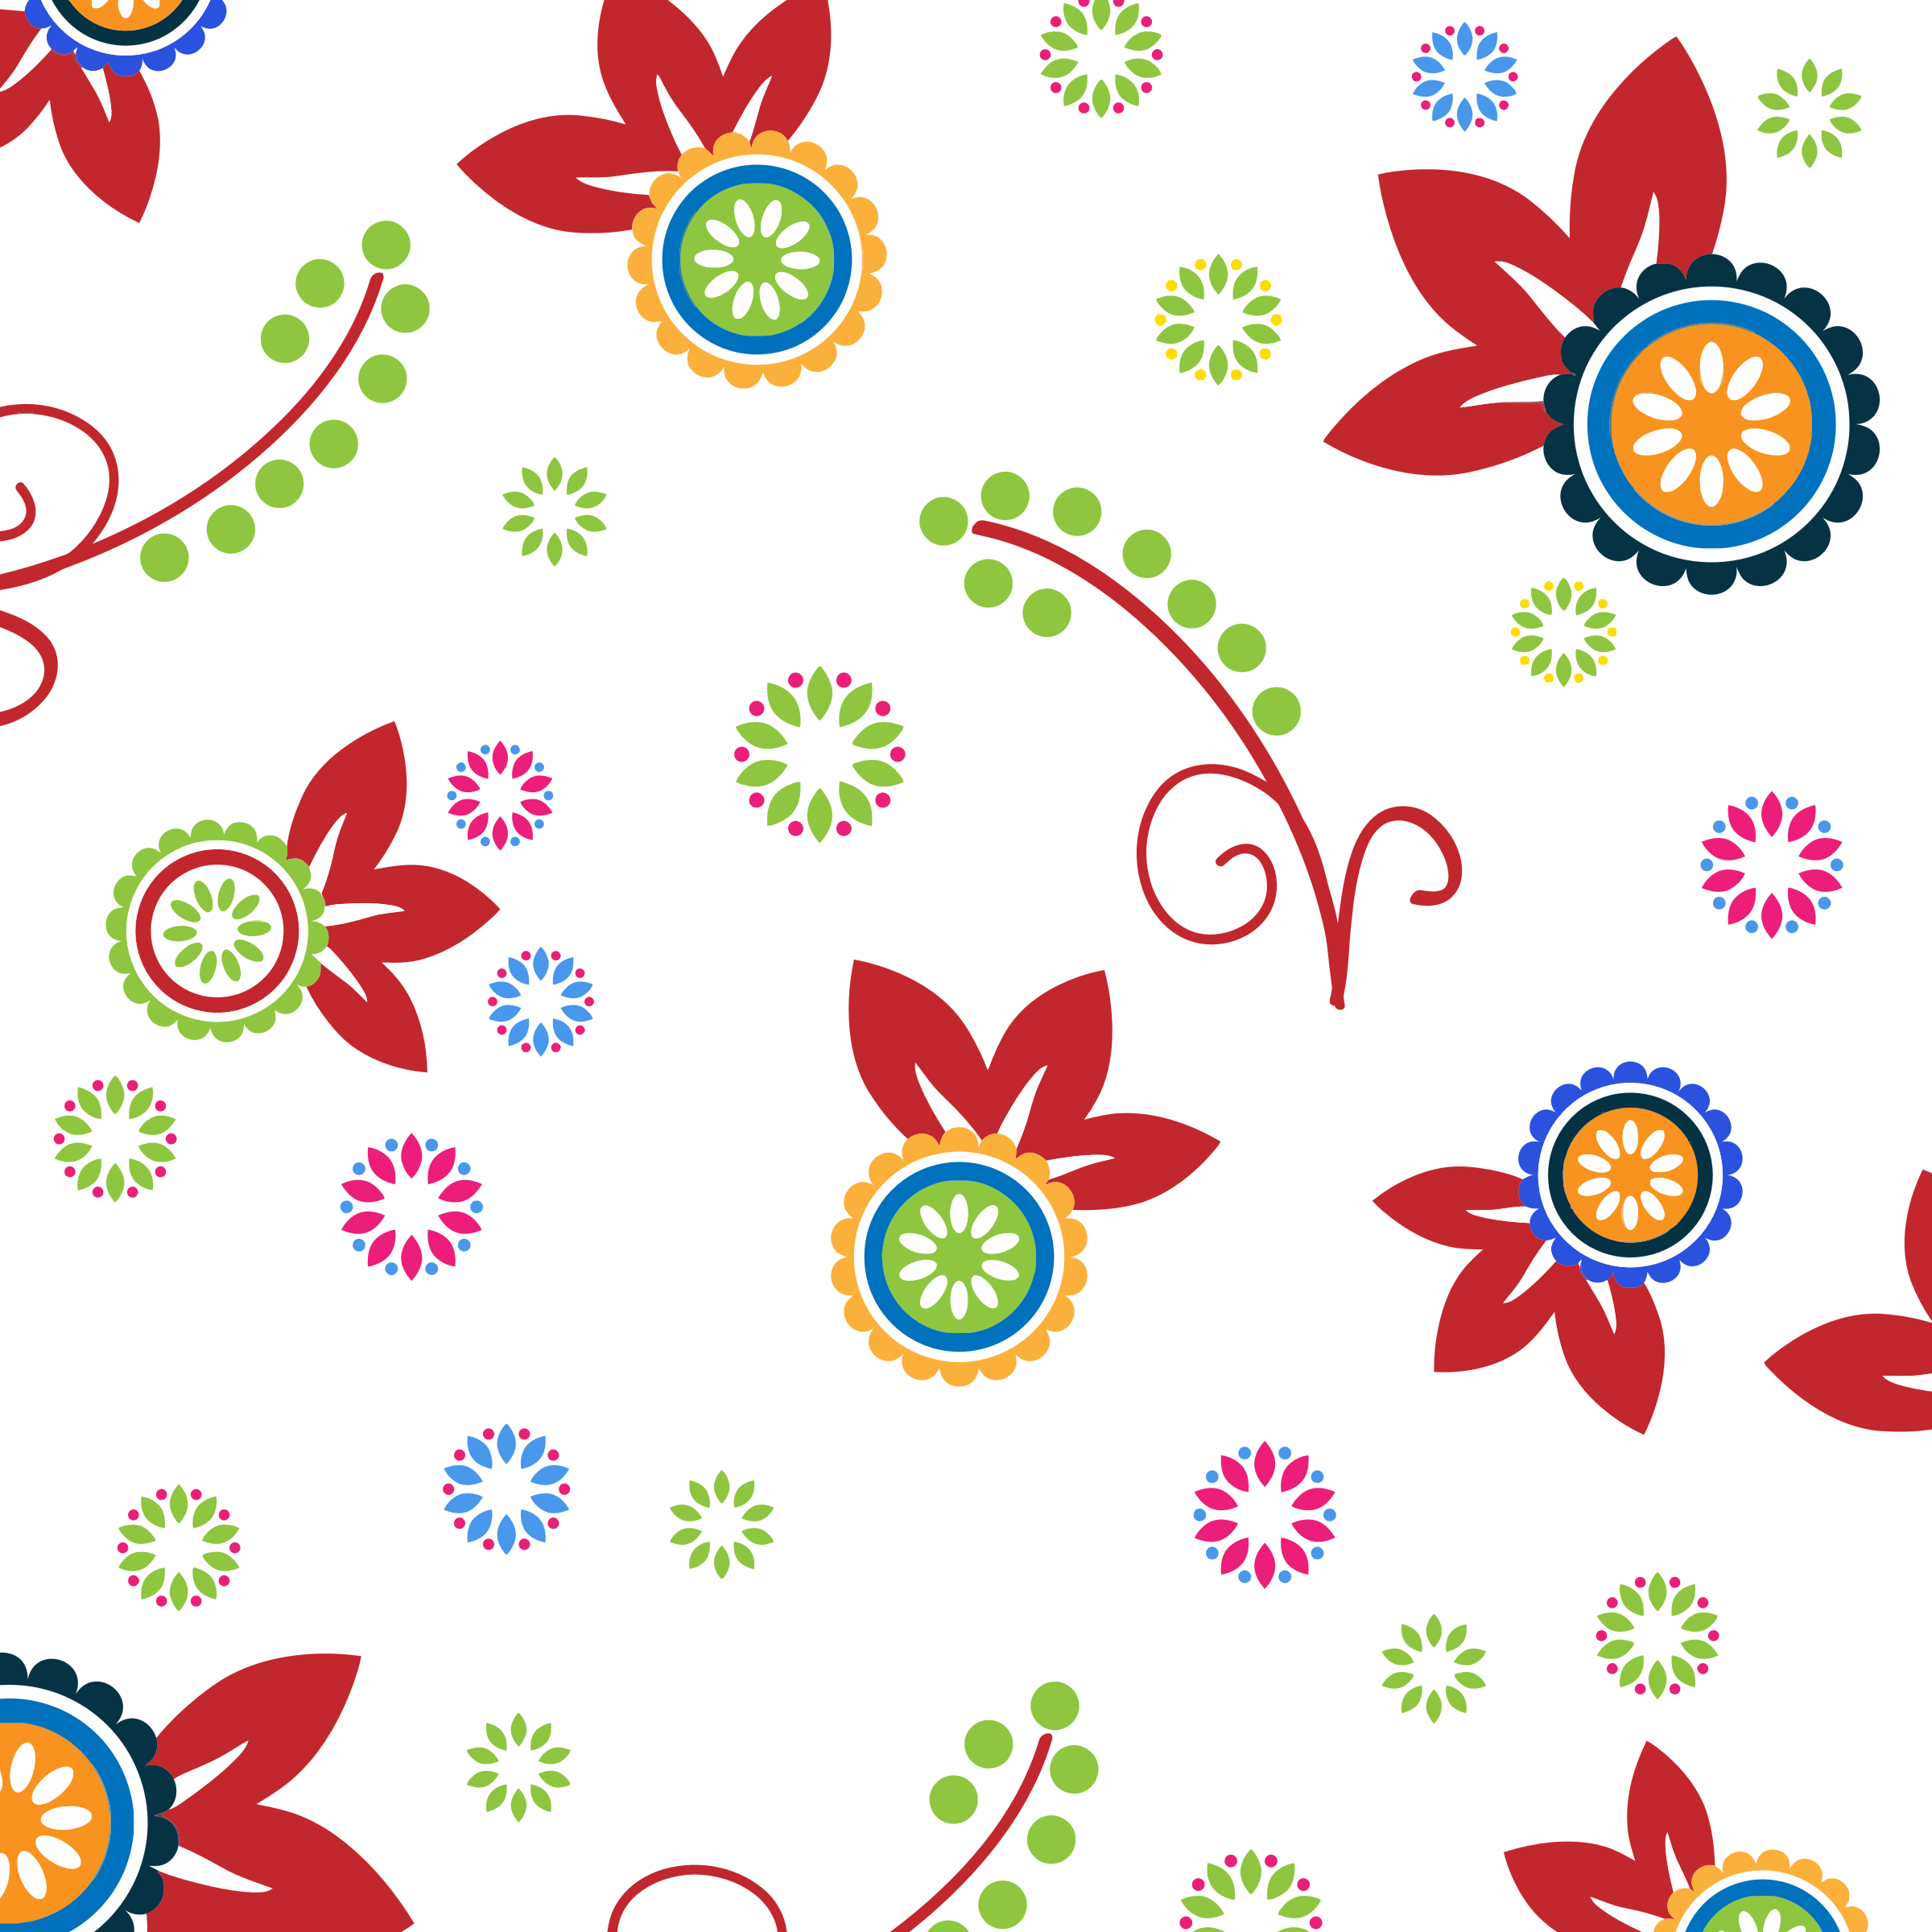 Colorful Floral Pattern Background 2 by GDJ